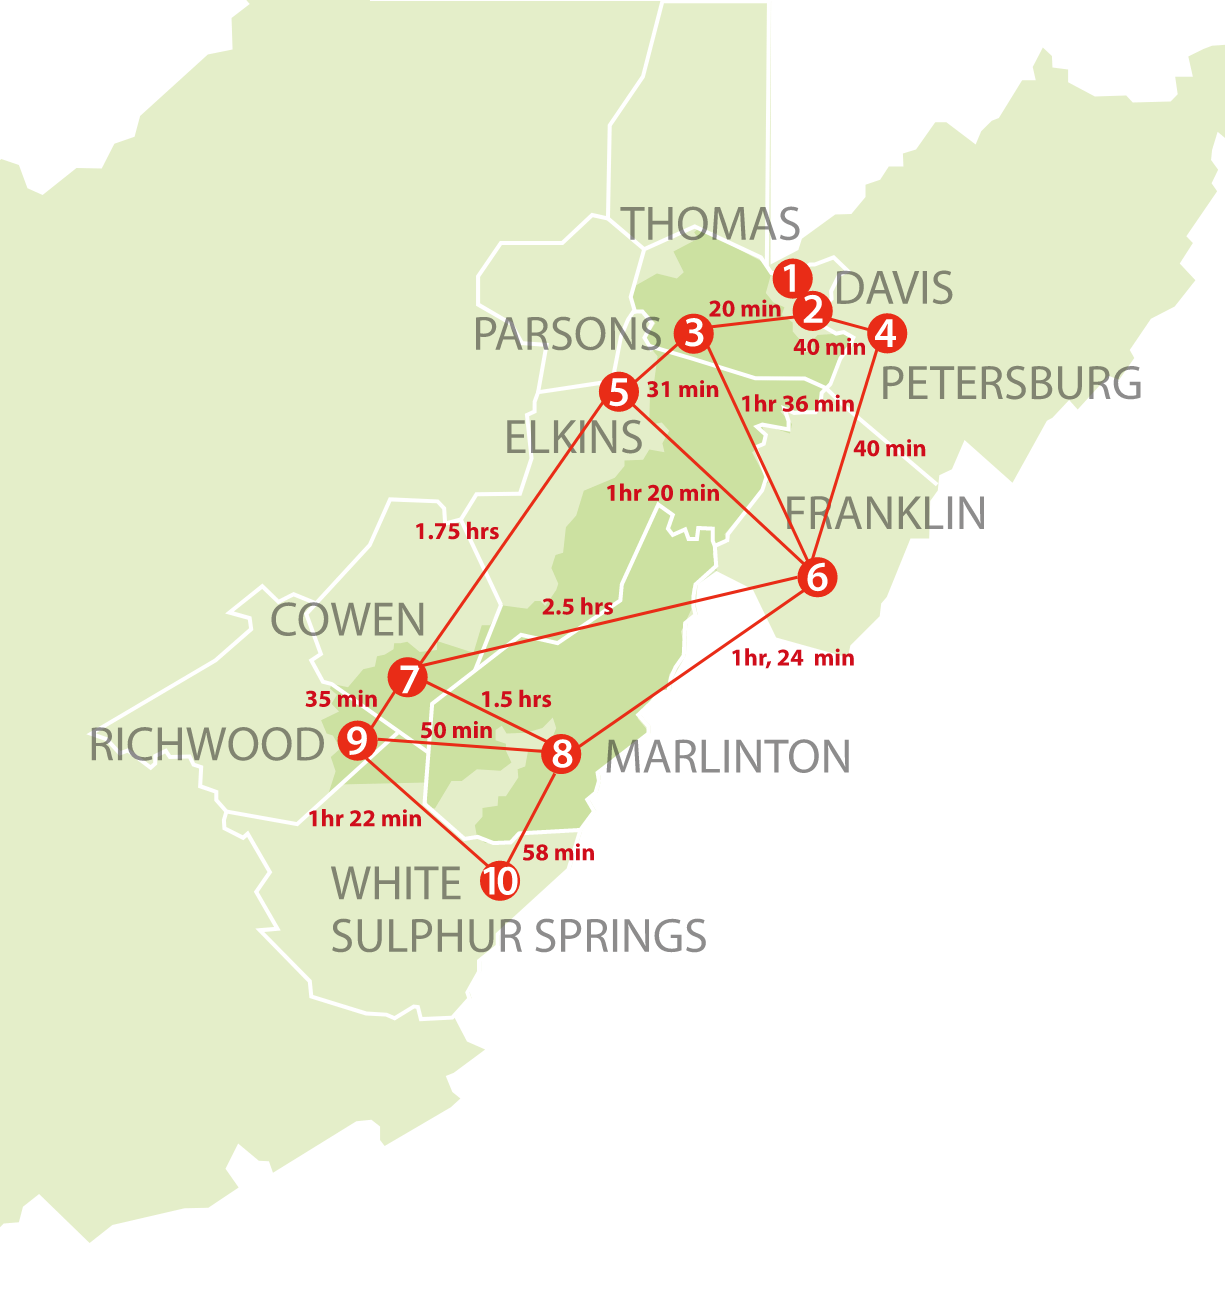 map showing connection between 10 towns